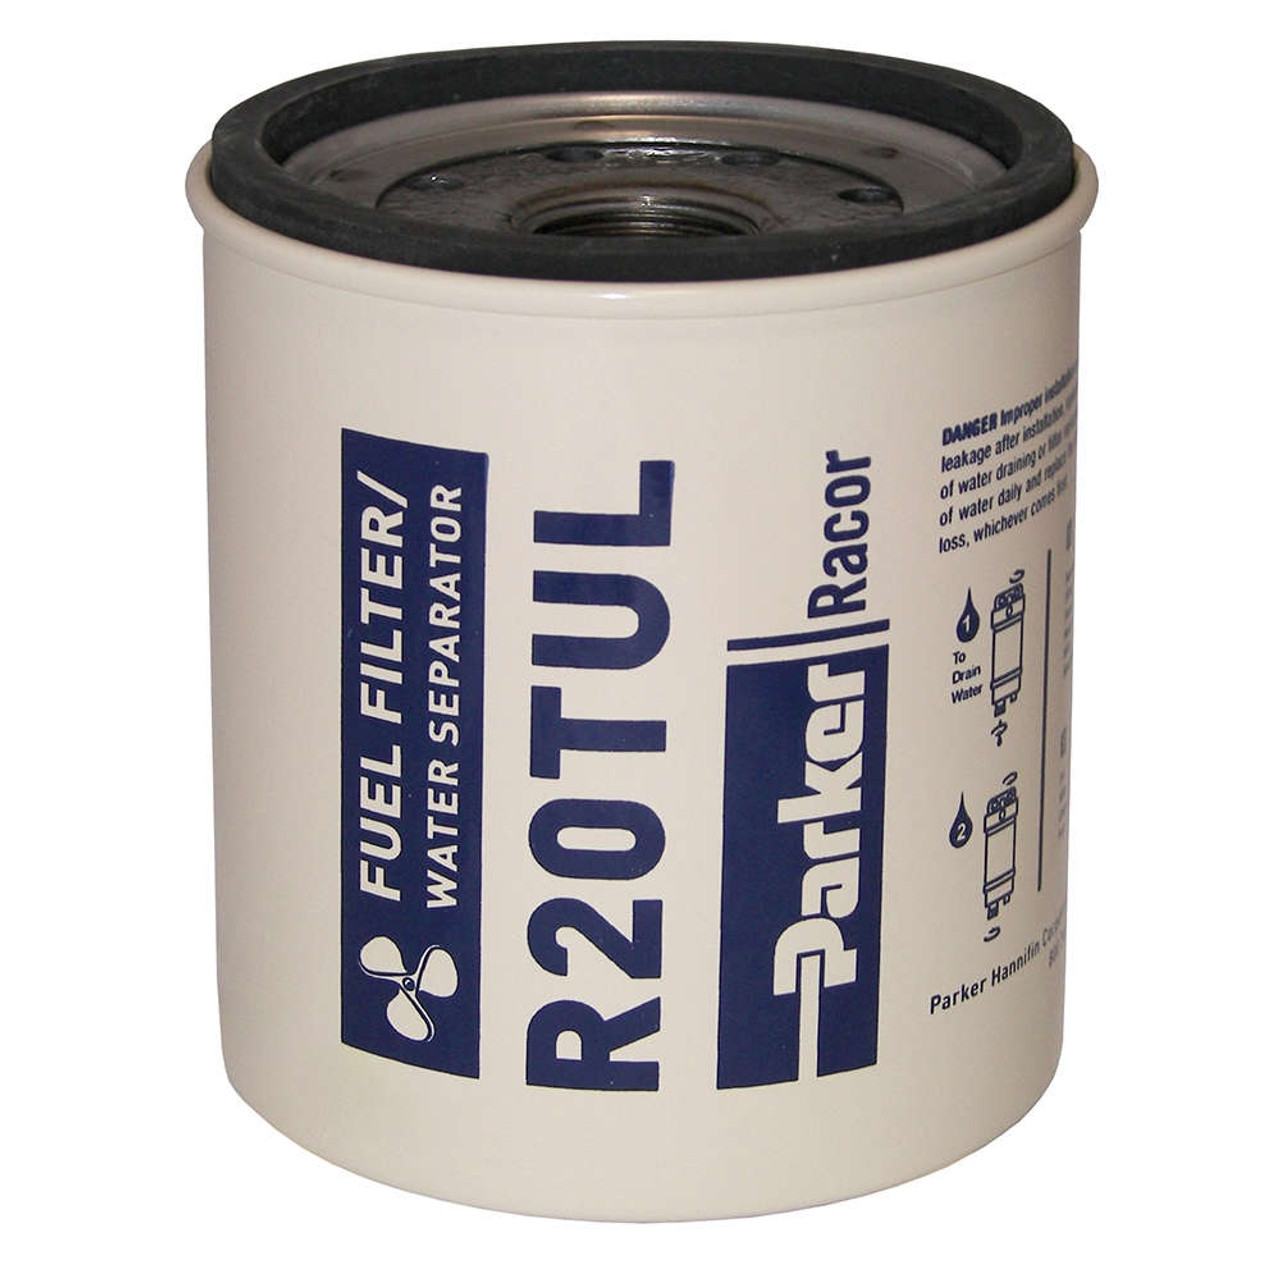 Racor 320 Engine Spin On Series Fuel Filter Water Separator R20tul Filters For Diesel Engines 12